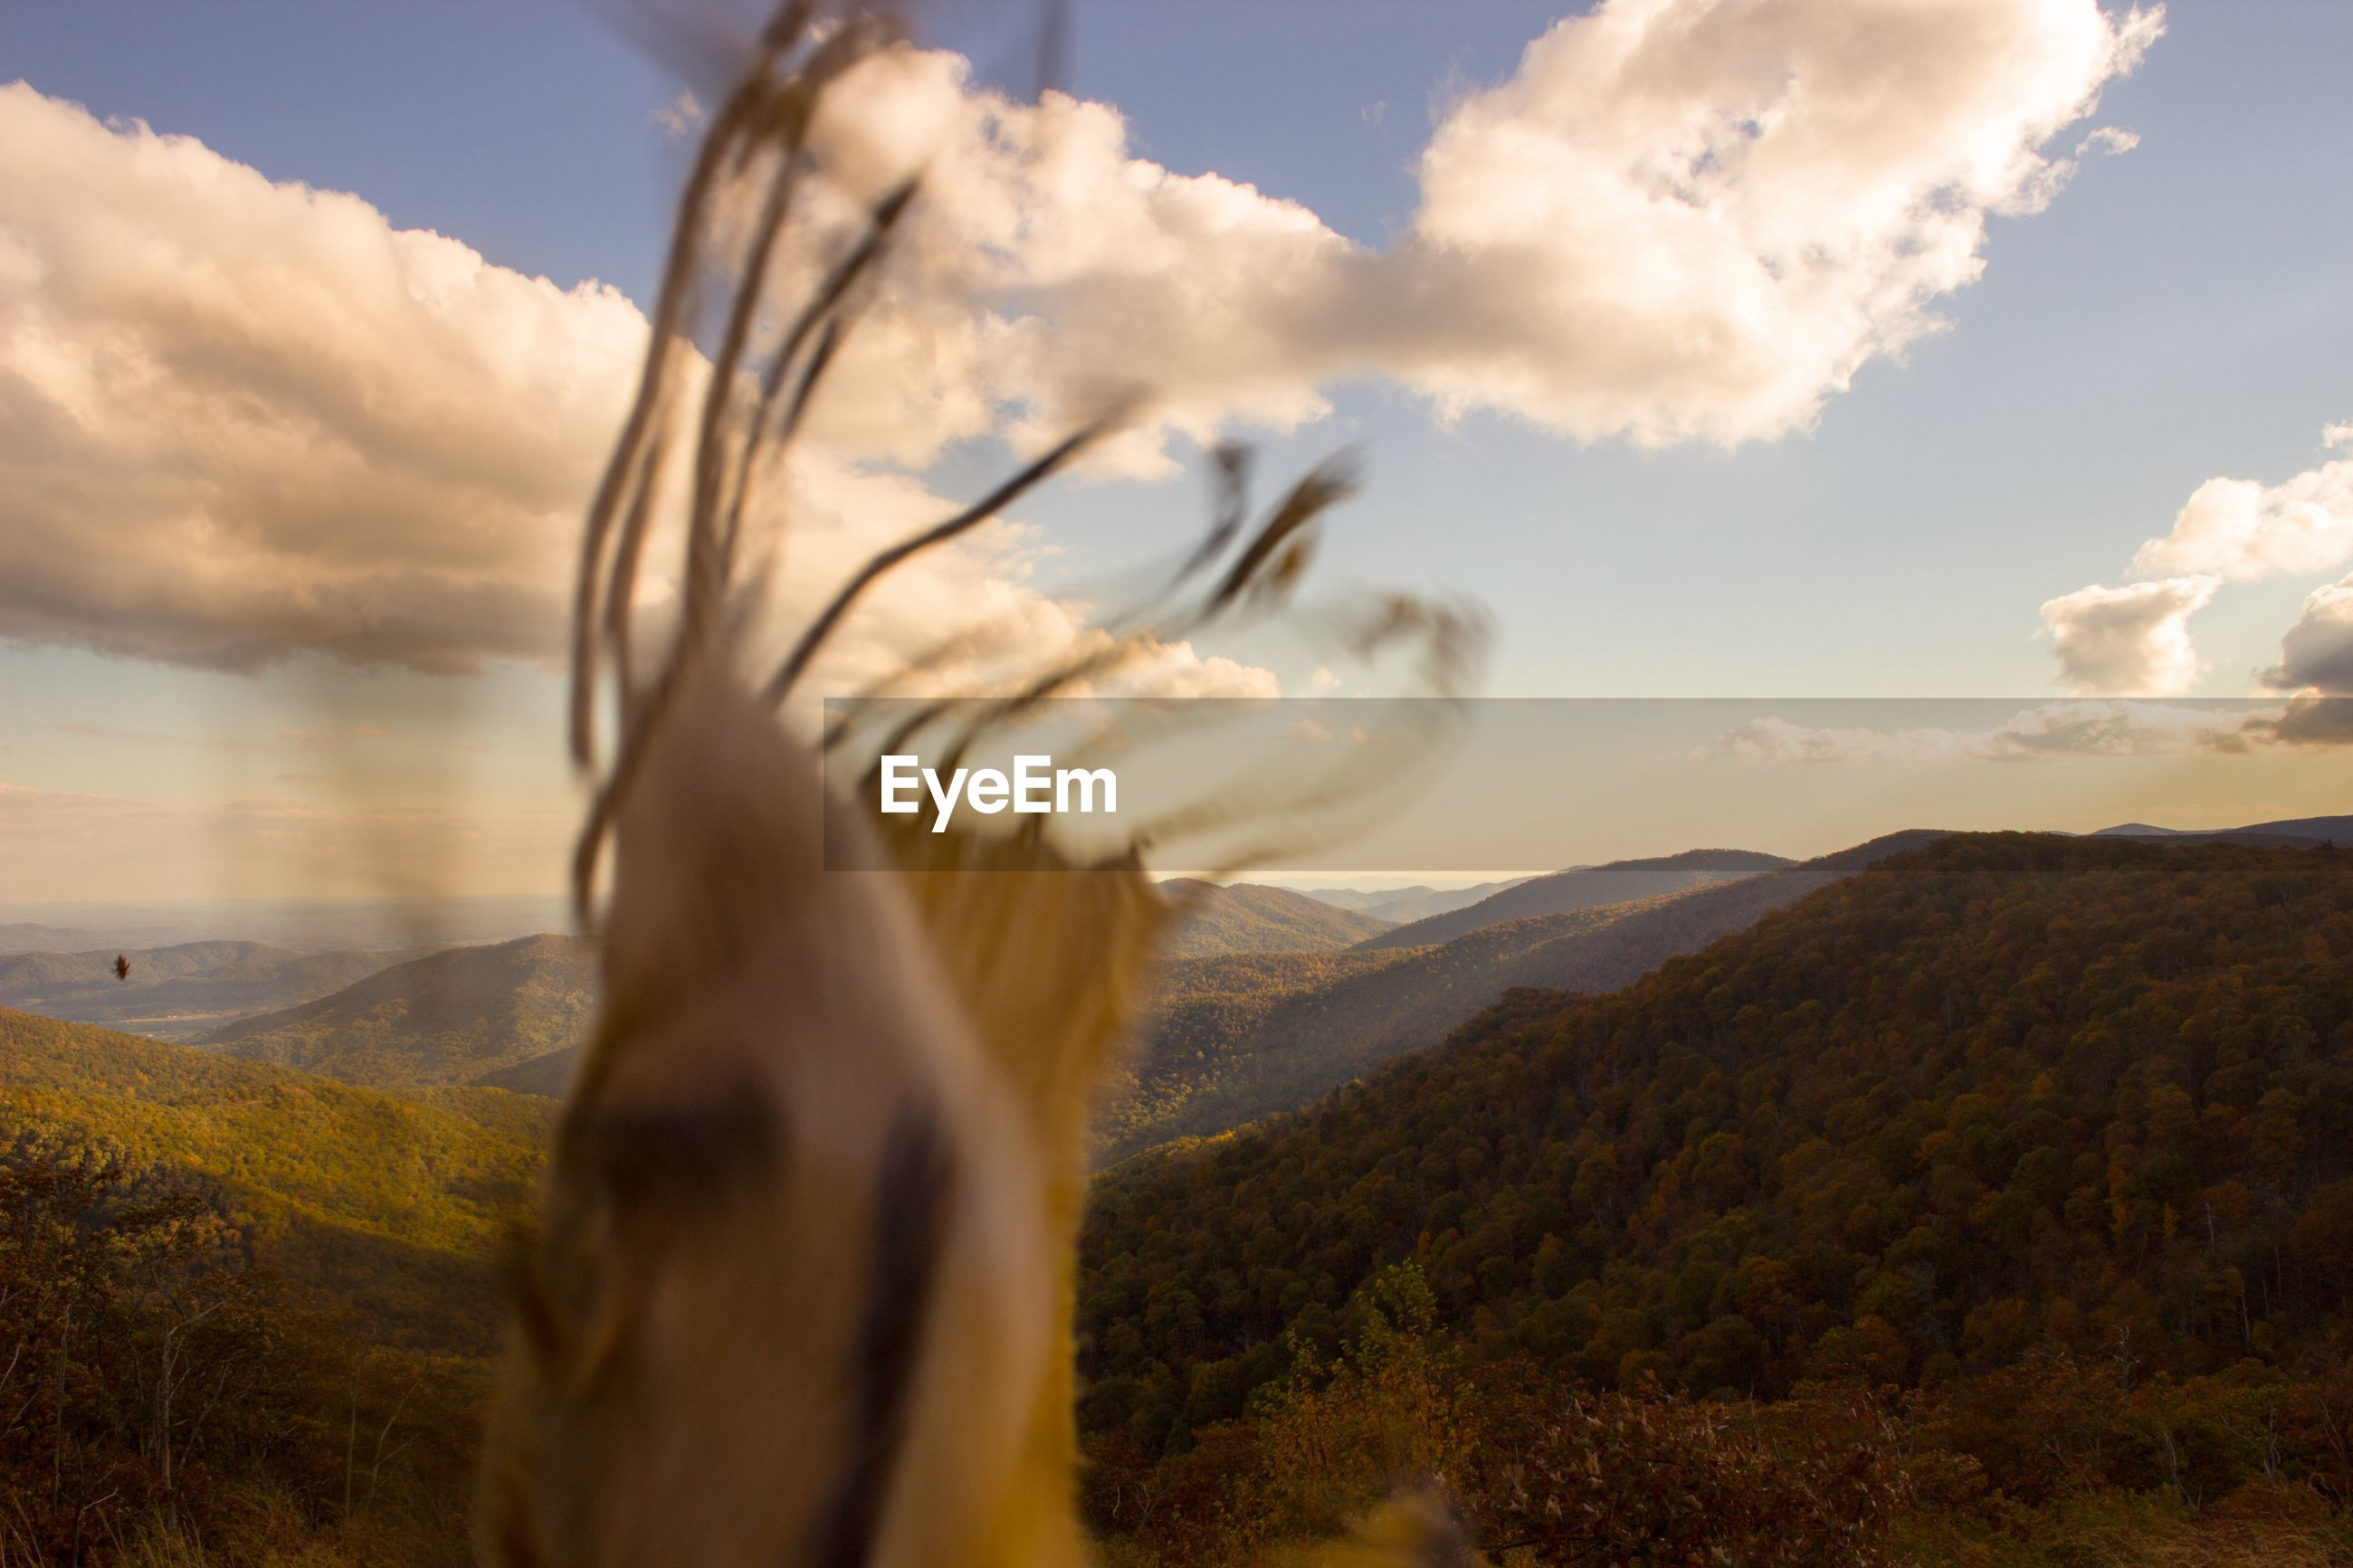 Blur image of fabric by mountains against sky